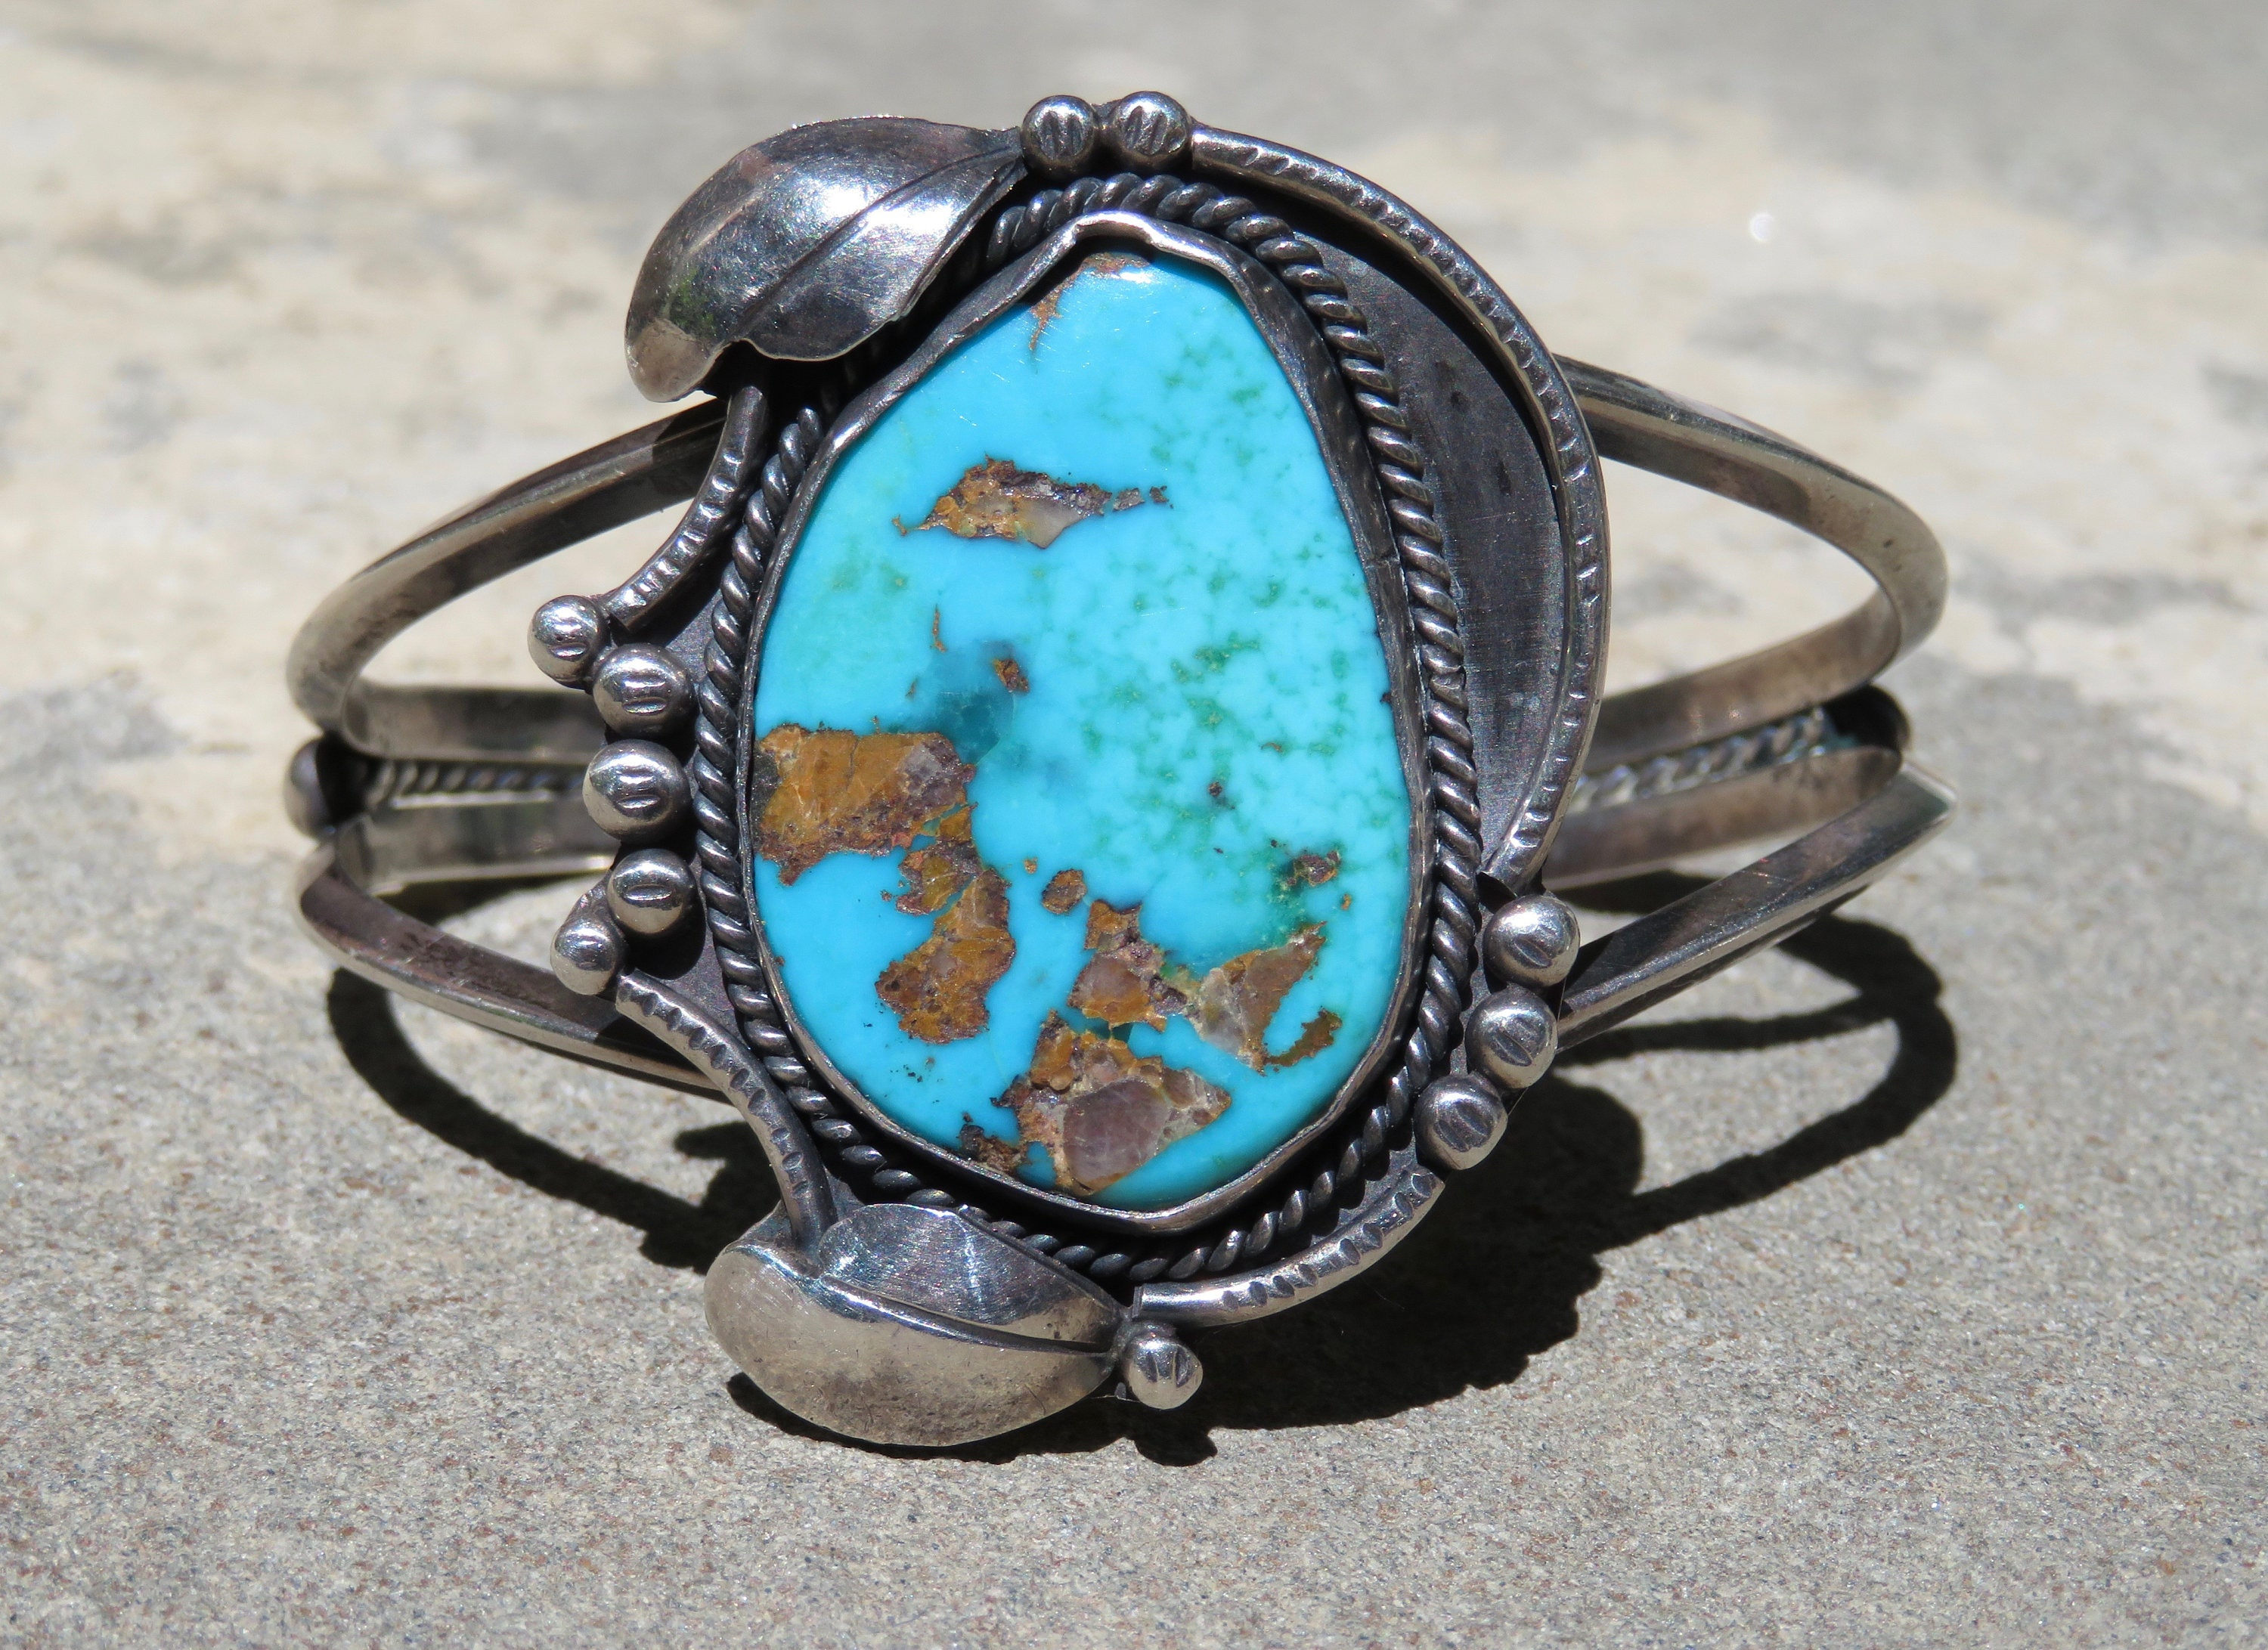 Turquoise Jewelry Vintage Native American Bracelet Turquoise And